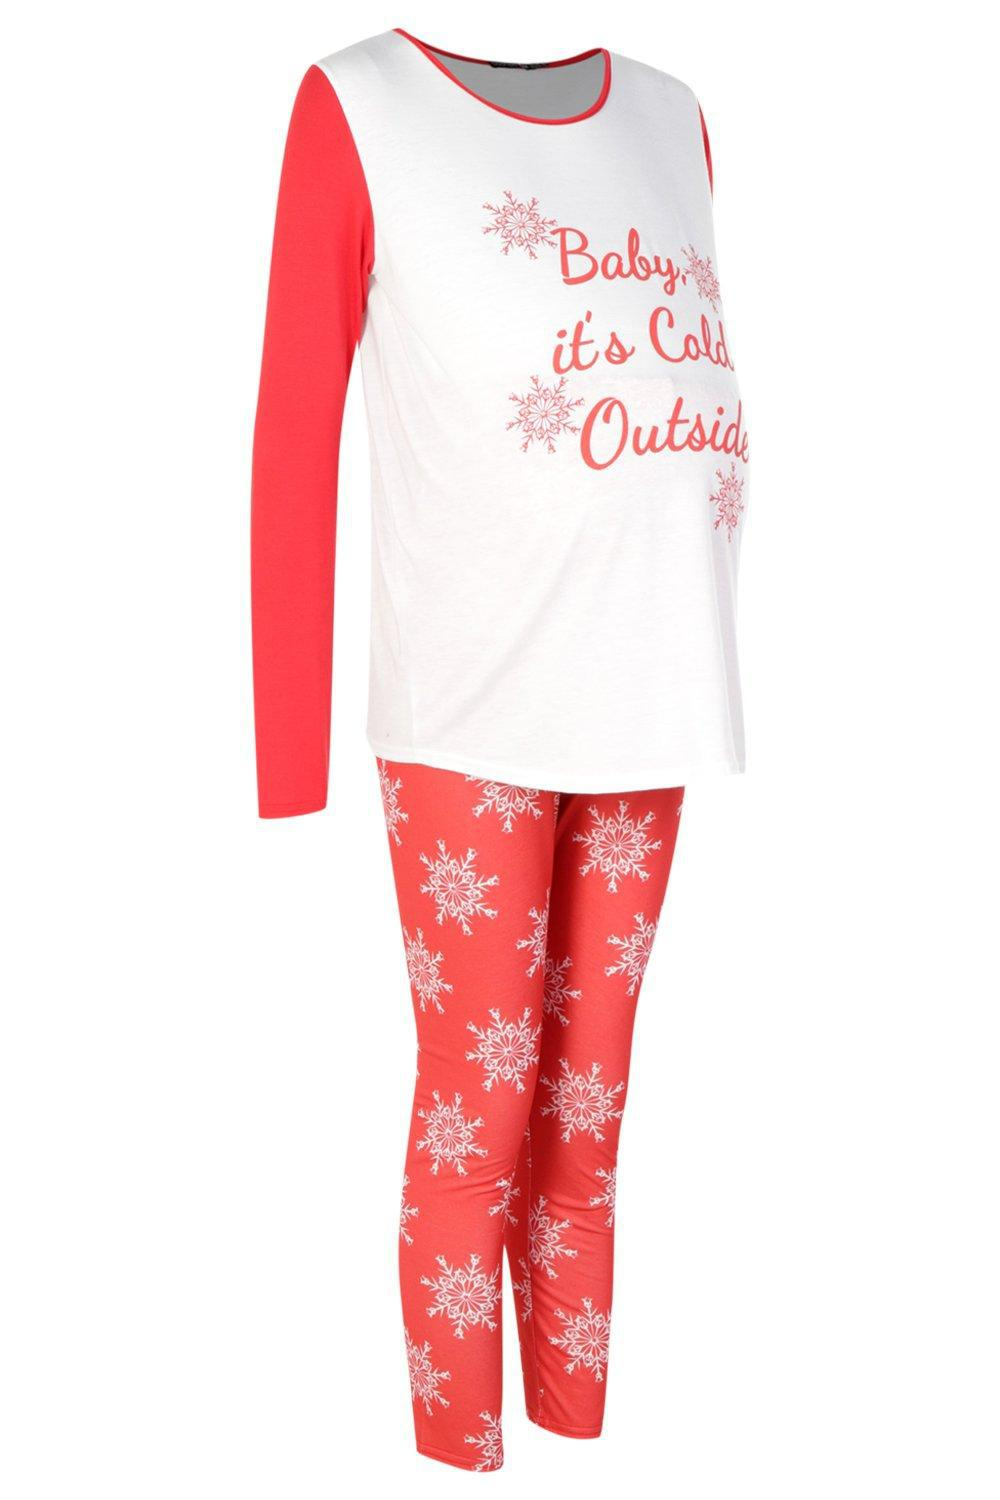 6376988170f91 Boohoo Maternity Baby It's Cold Outside Pyjama Set in Red - Lyst